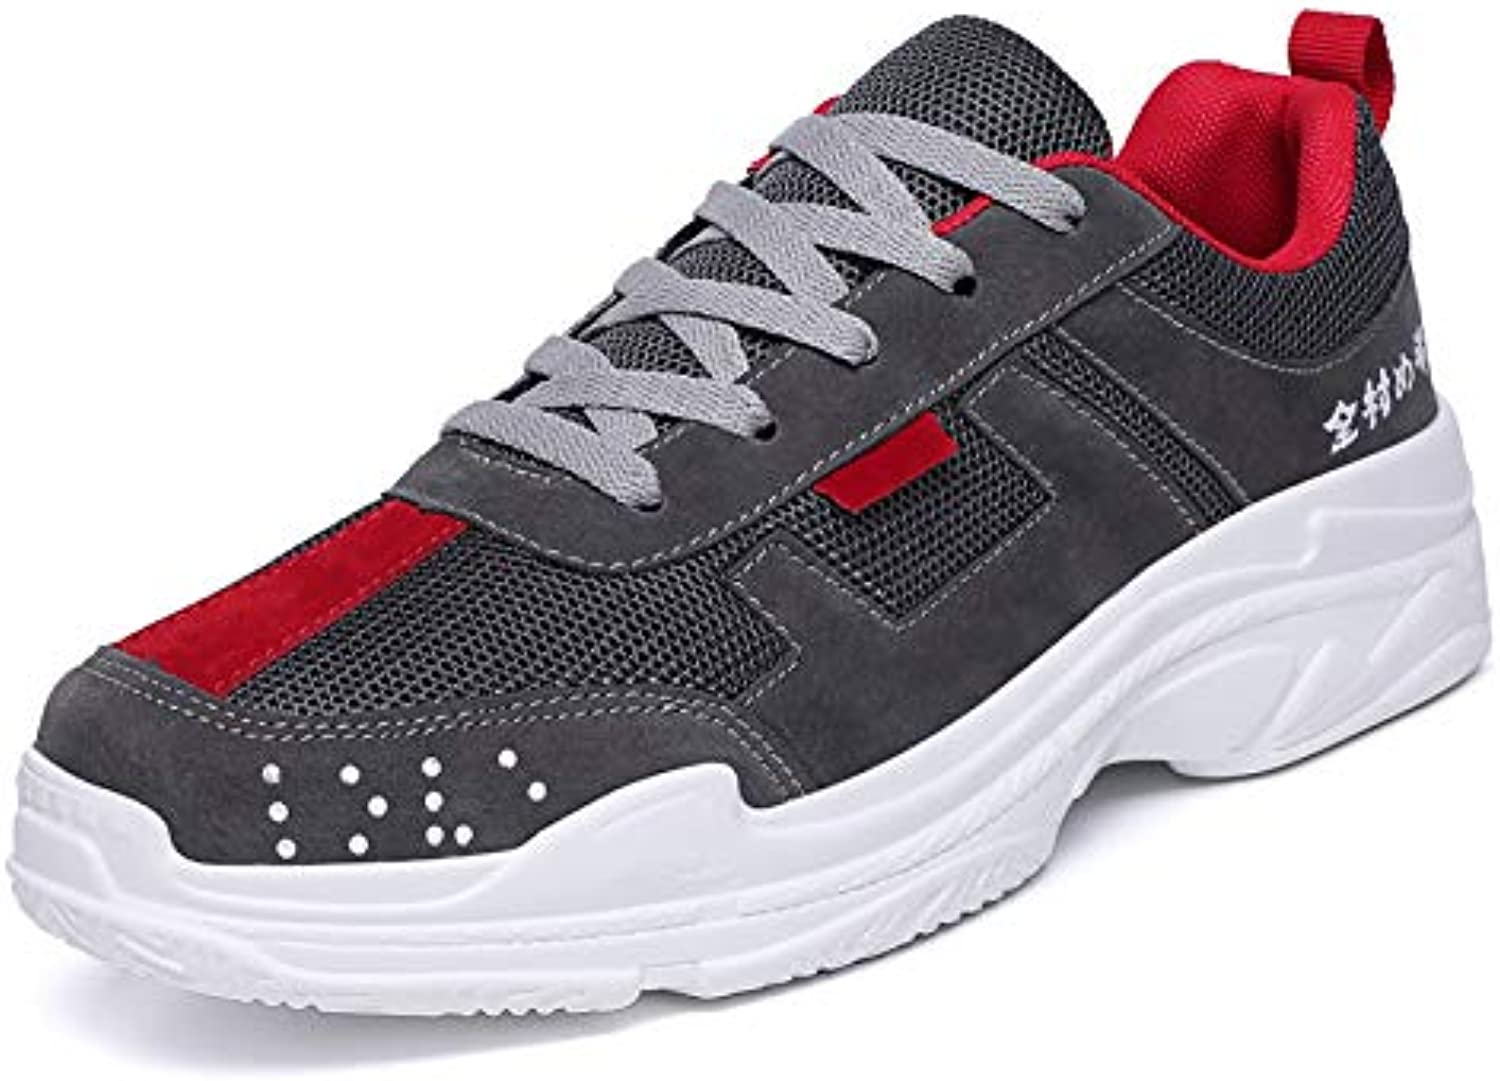 Na-Zh Men's Sneakers Casual shoes New casual shoes, old shoes, men